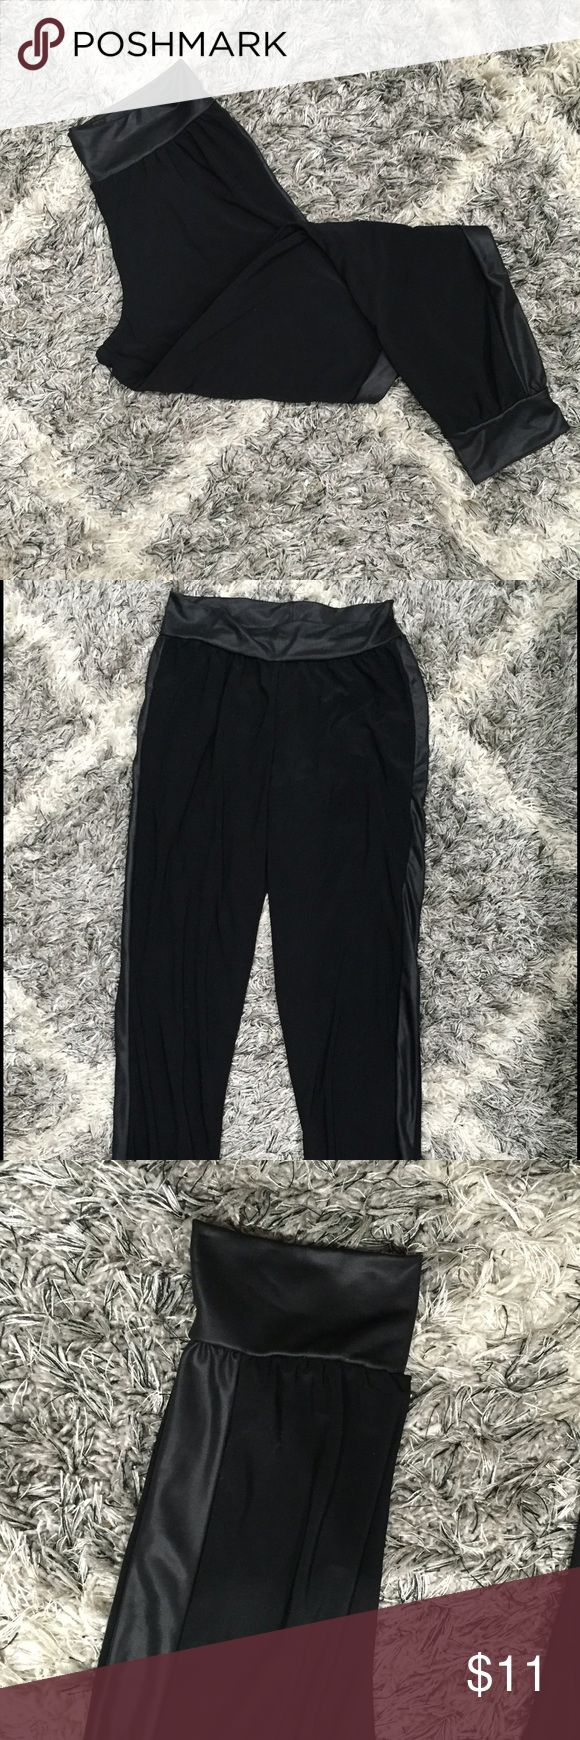 Black Dressy Genie Pants Black dressy genie pants with shiny black trim around waist, ankles and down the sides. Never Worn. Size Small Pants Ankle & Cropped